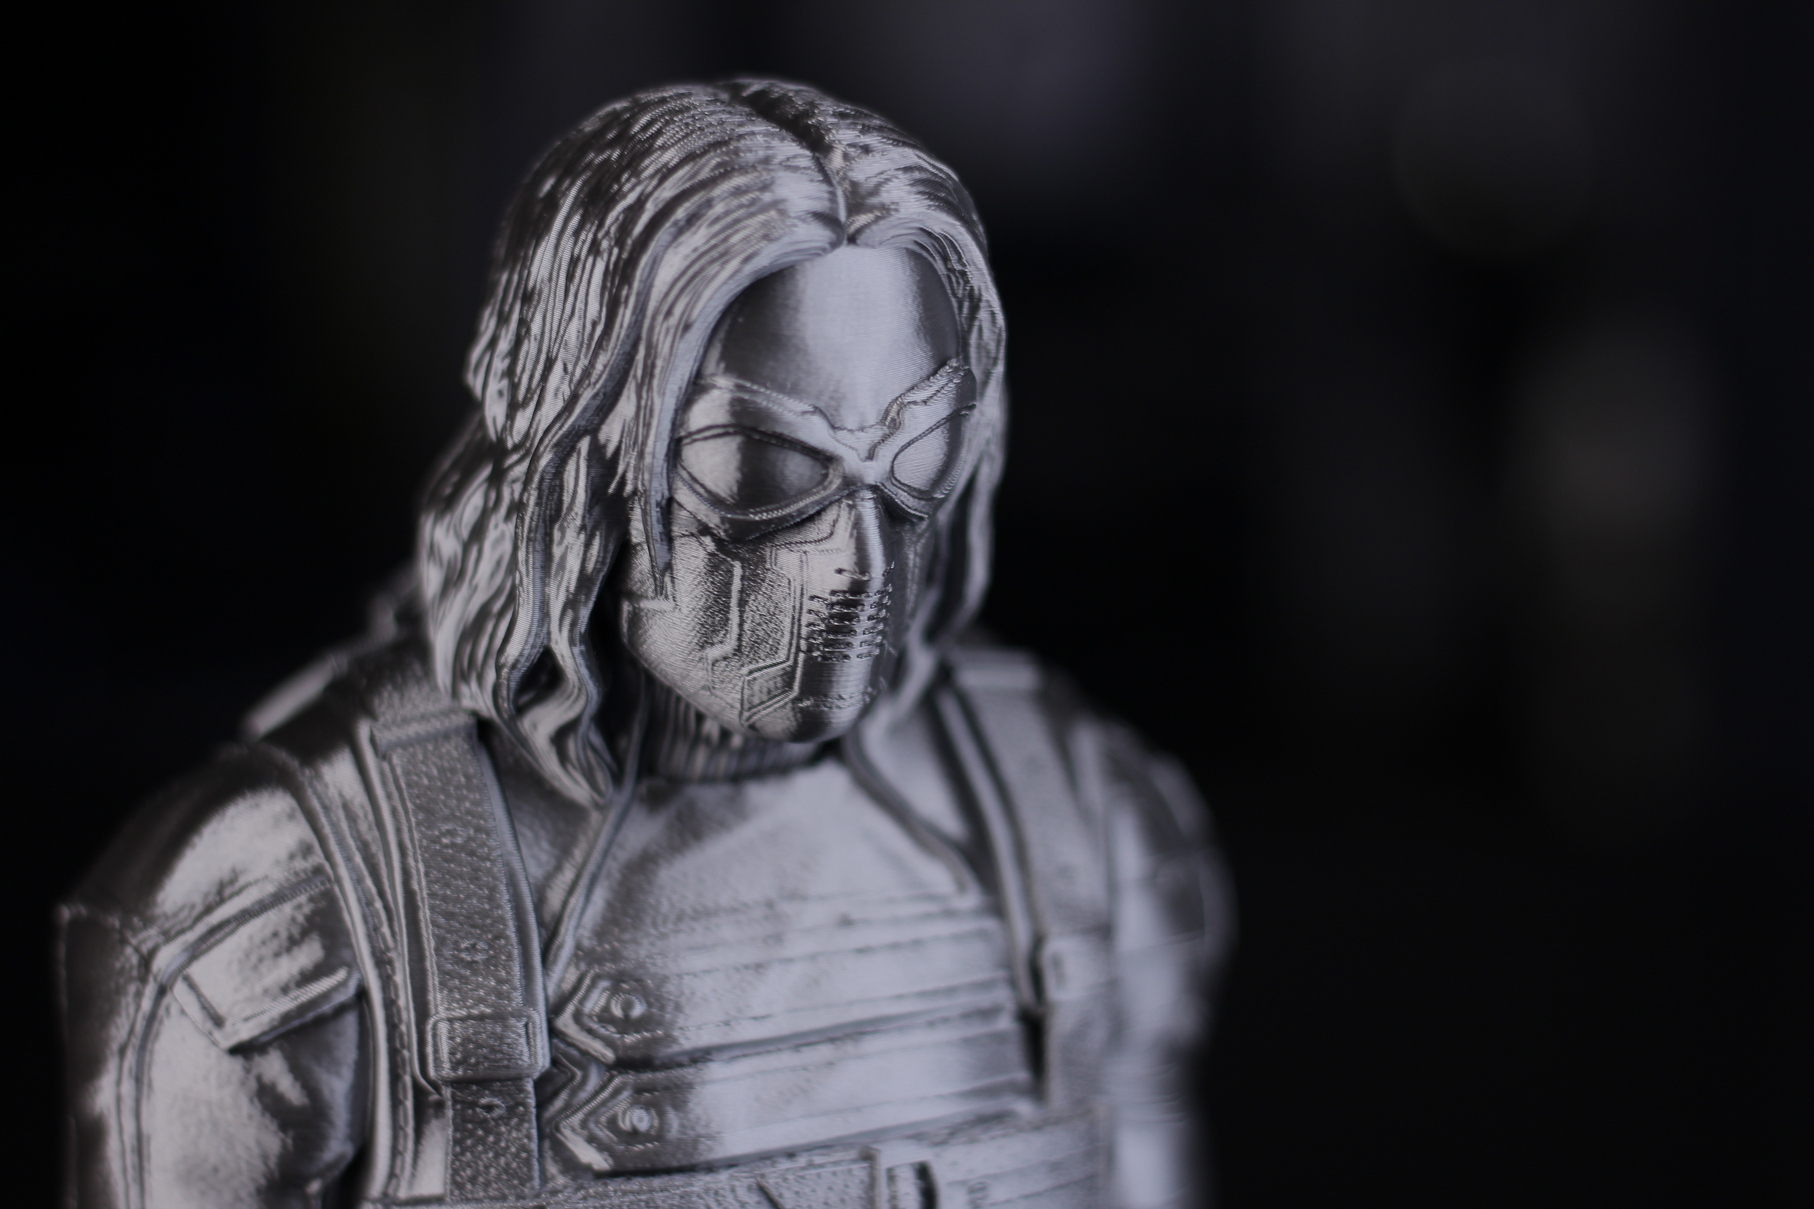 Masked-Winter-Soldier-from-Fotis-Mint-on-Creality-Sermoon-D1-5